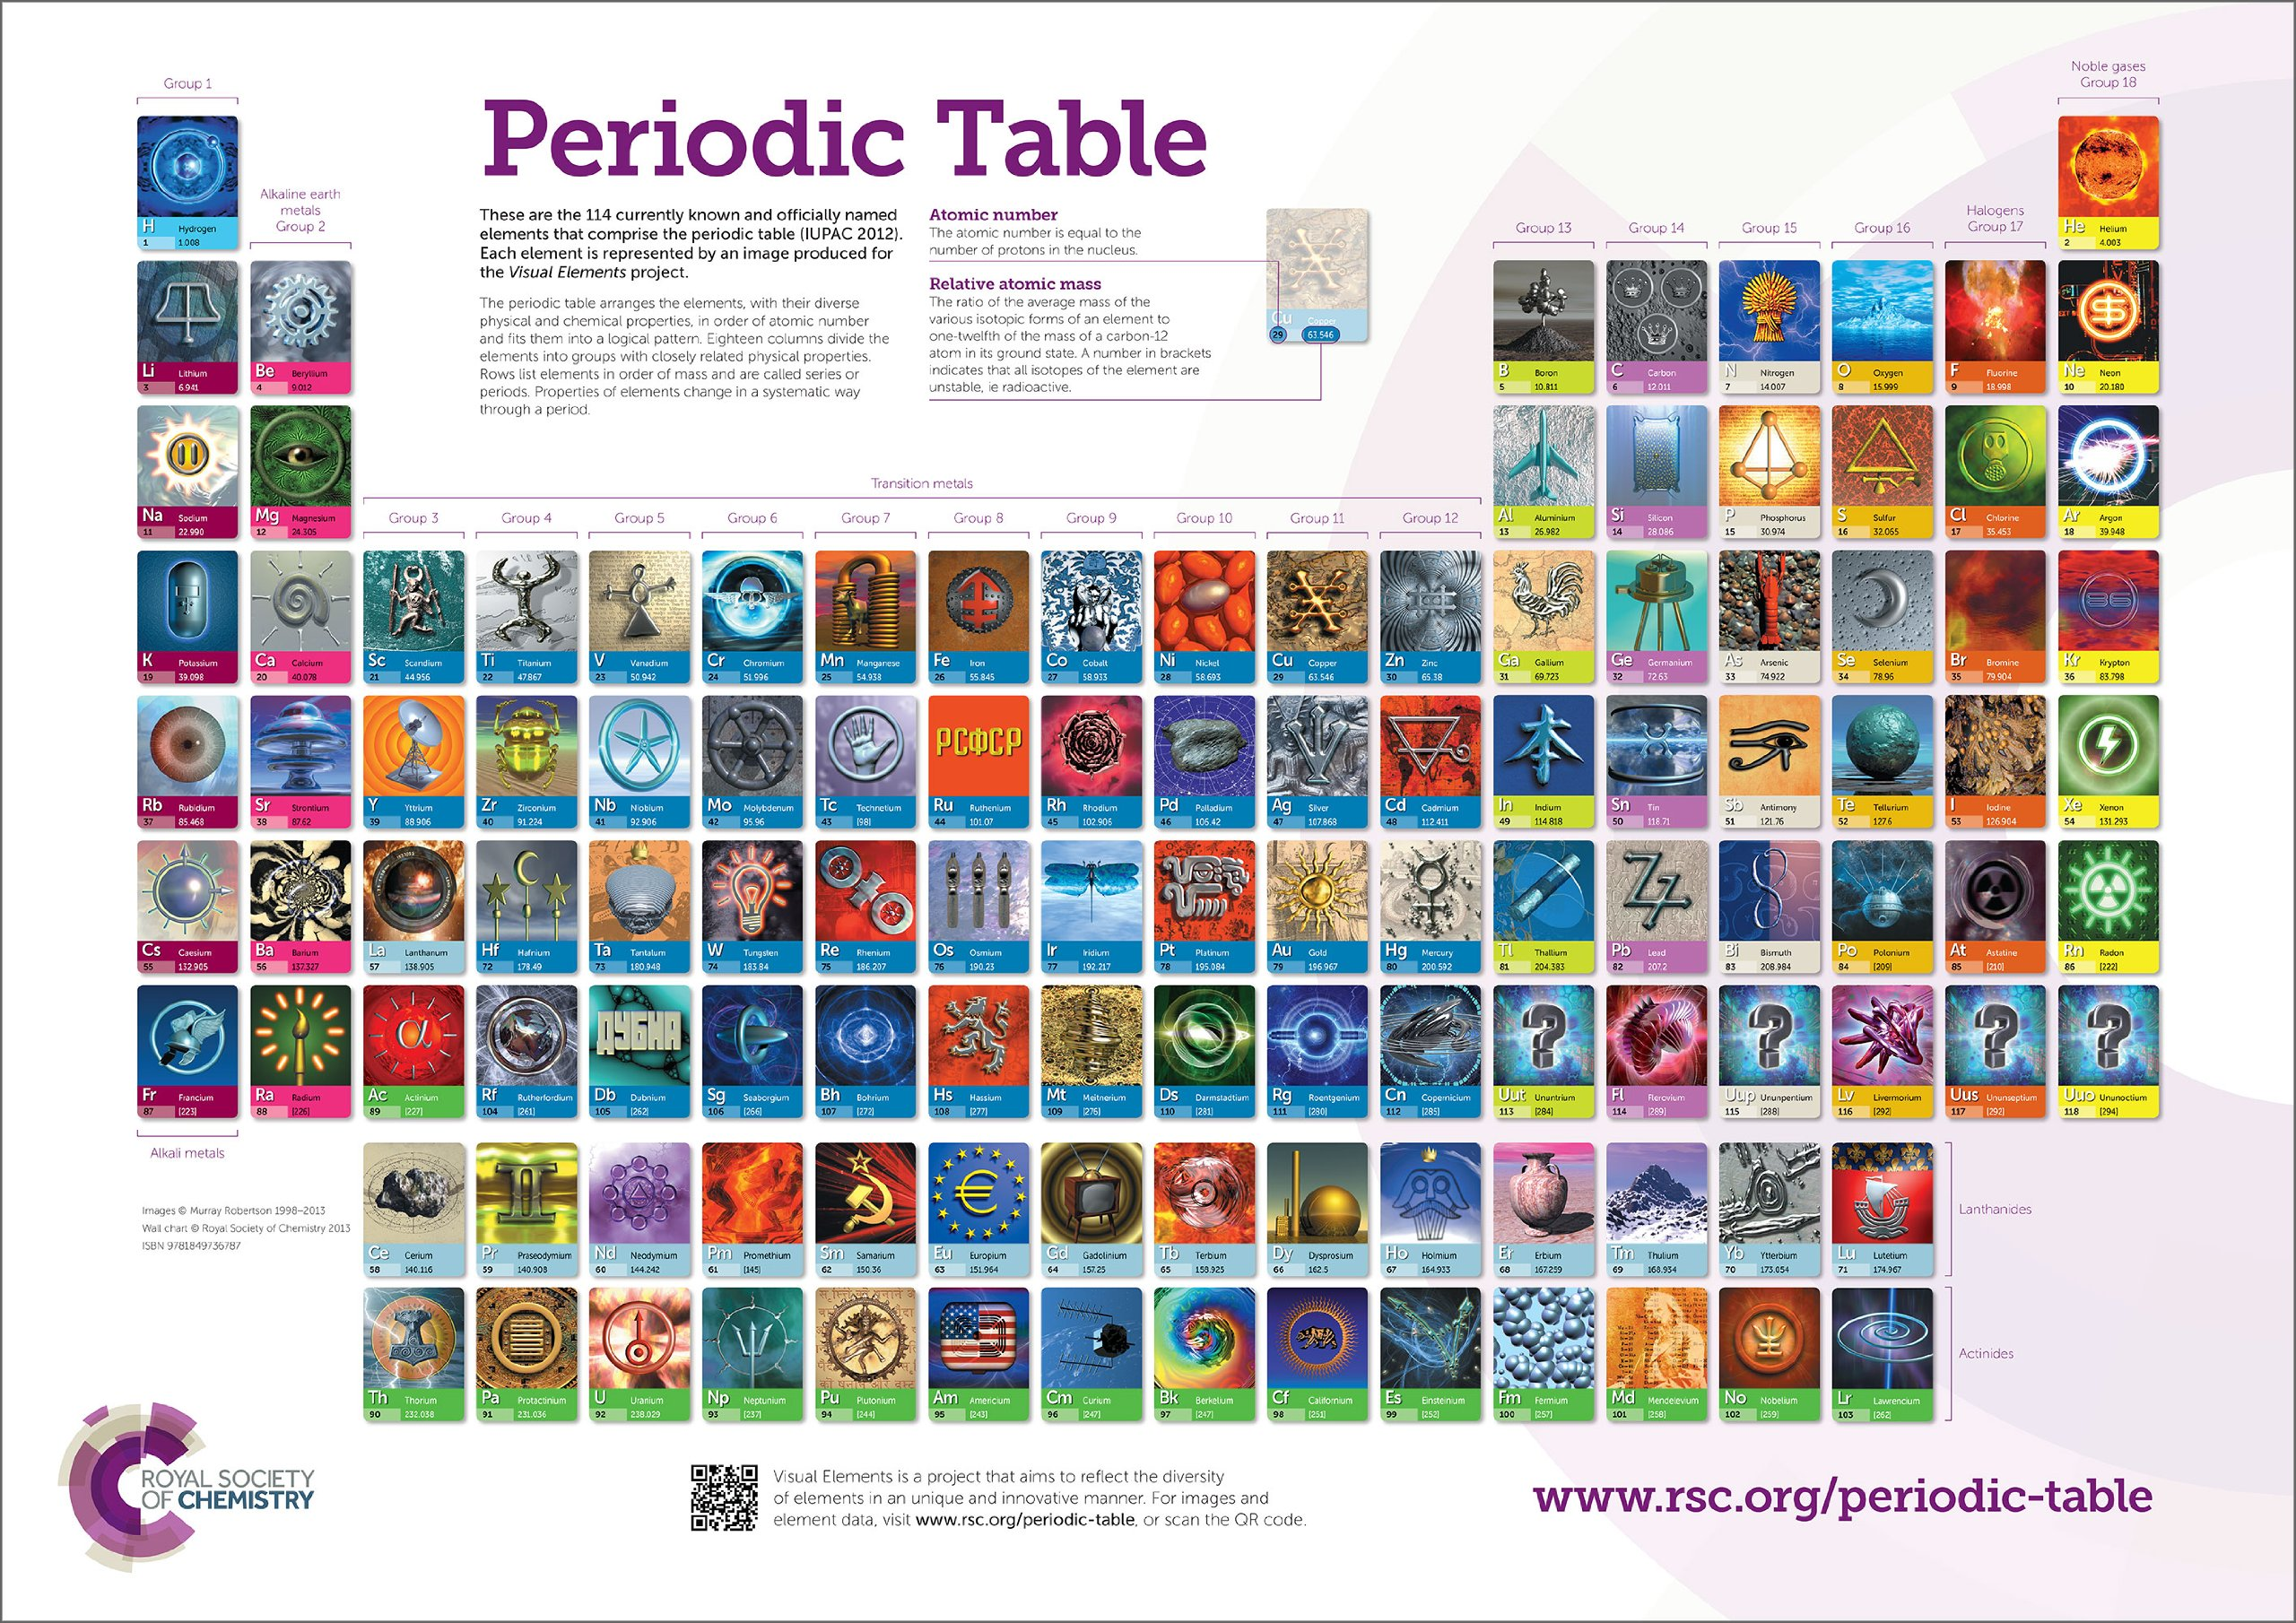 Rsc periodic table wallchart a0 amazon murray robertson rsc periodic table wallchart a0 amazon murray robertson 9781849736787 books urtaz Gallery